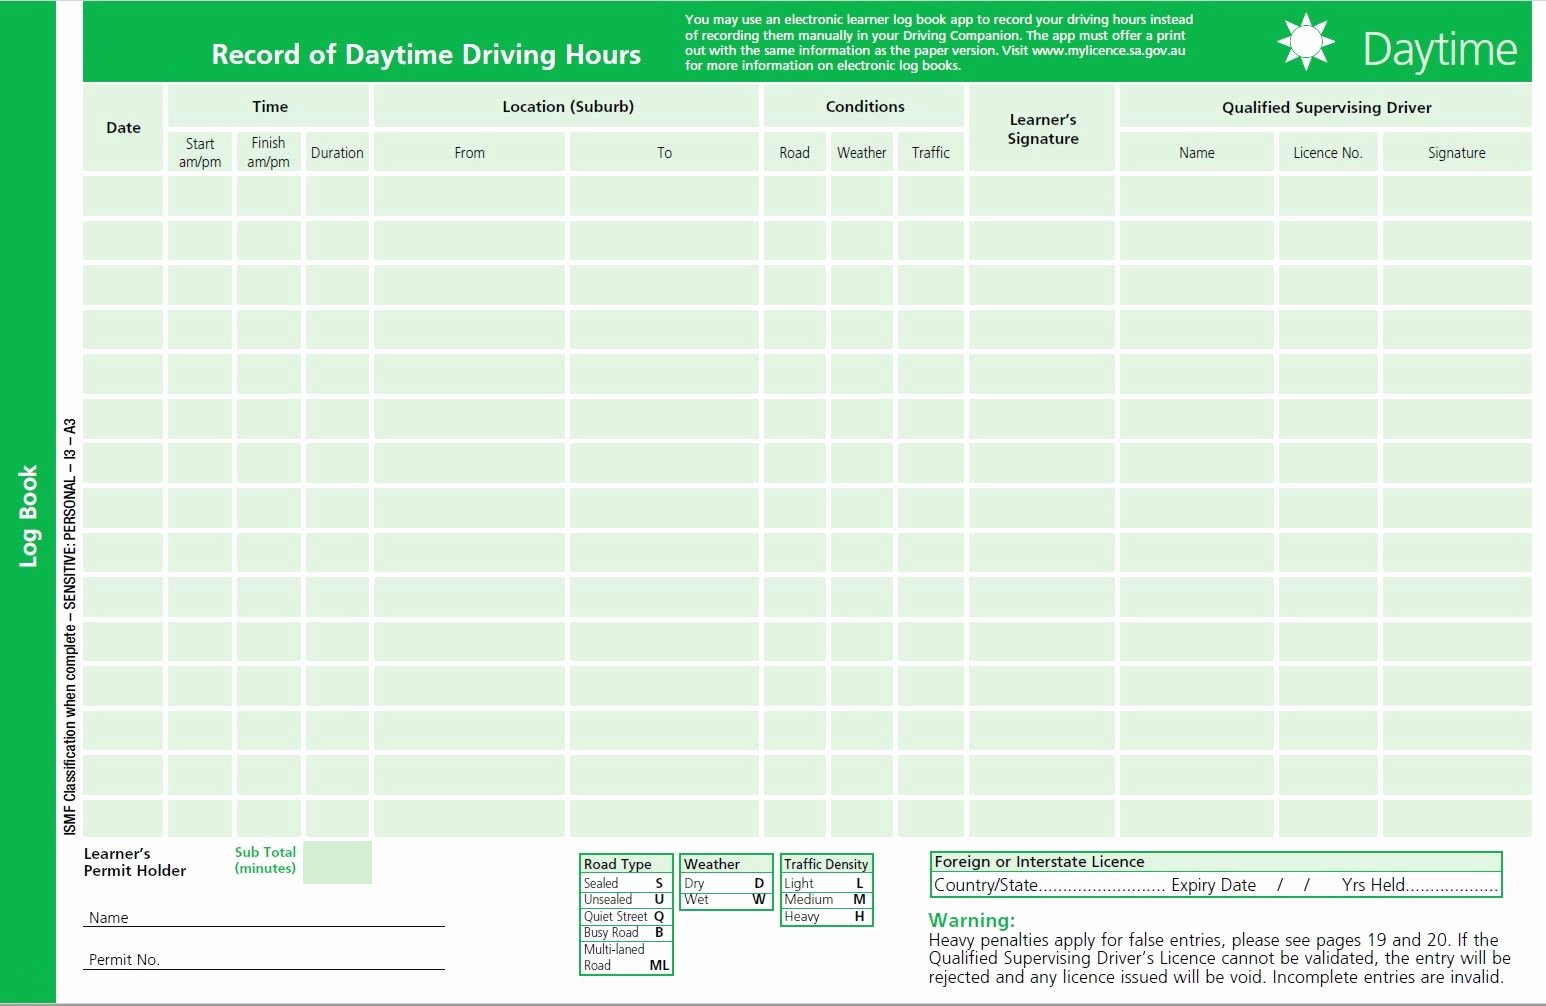 Drivers Log Book Template Inspirational My Licence the Driving Panion Daytime forms